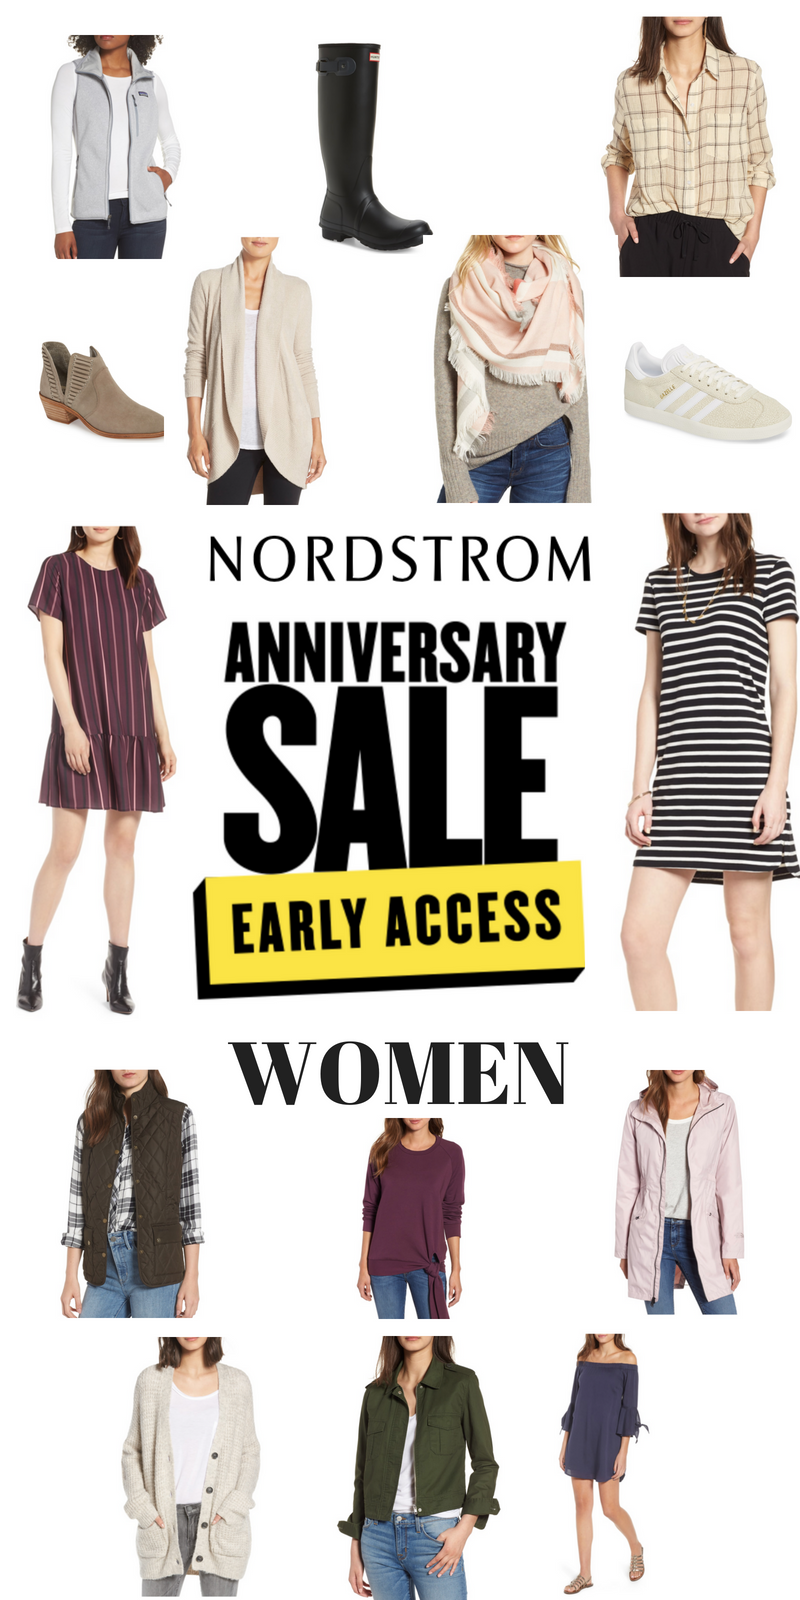 The ultimate guide to the Nordstrom Anniversary Sale for women s clothing  and accessories! Get the hottest fall trends that you can wear now 18d8cb0e6